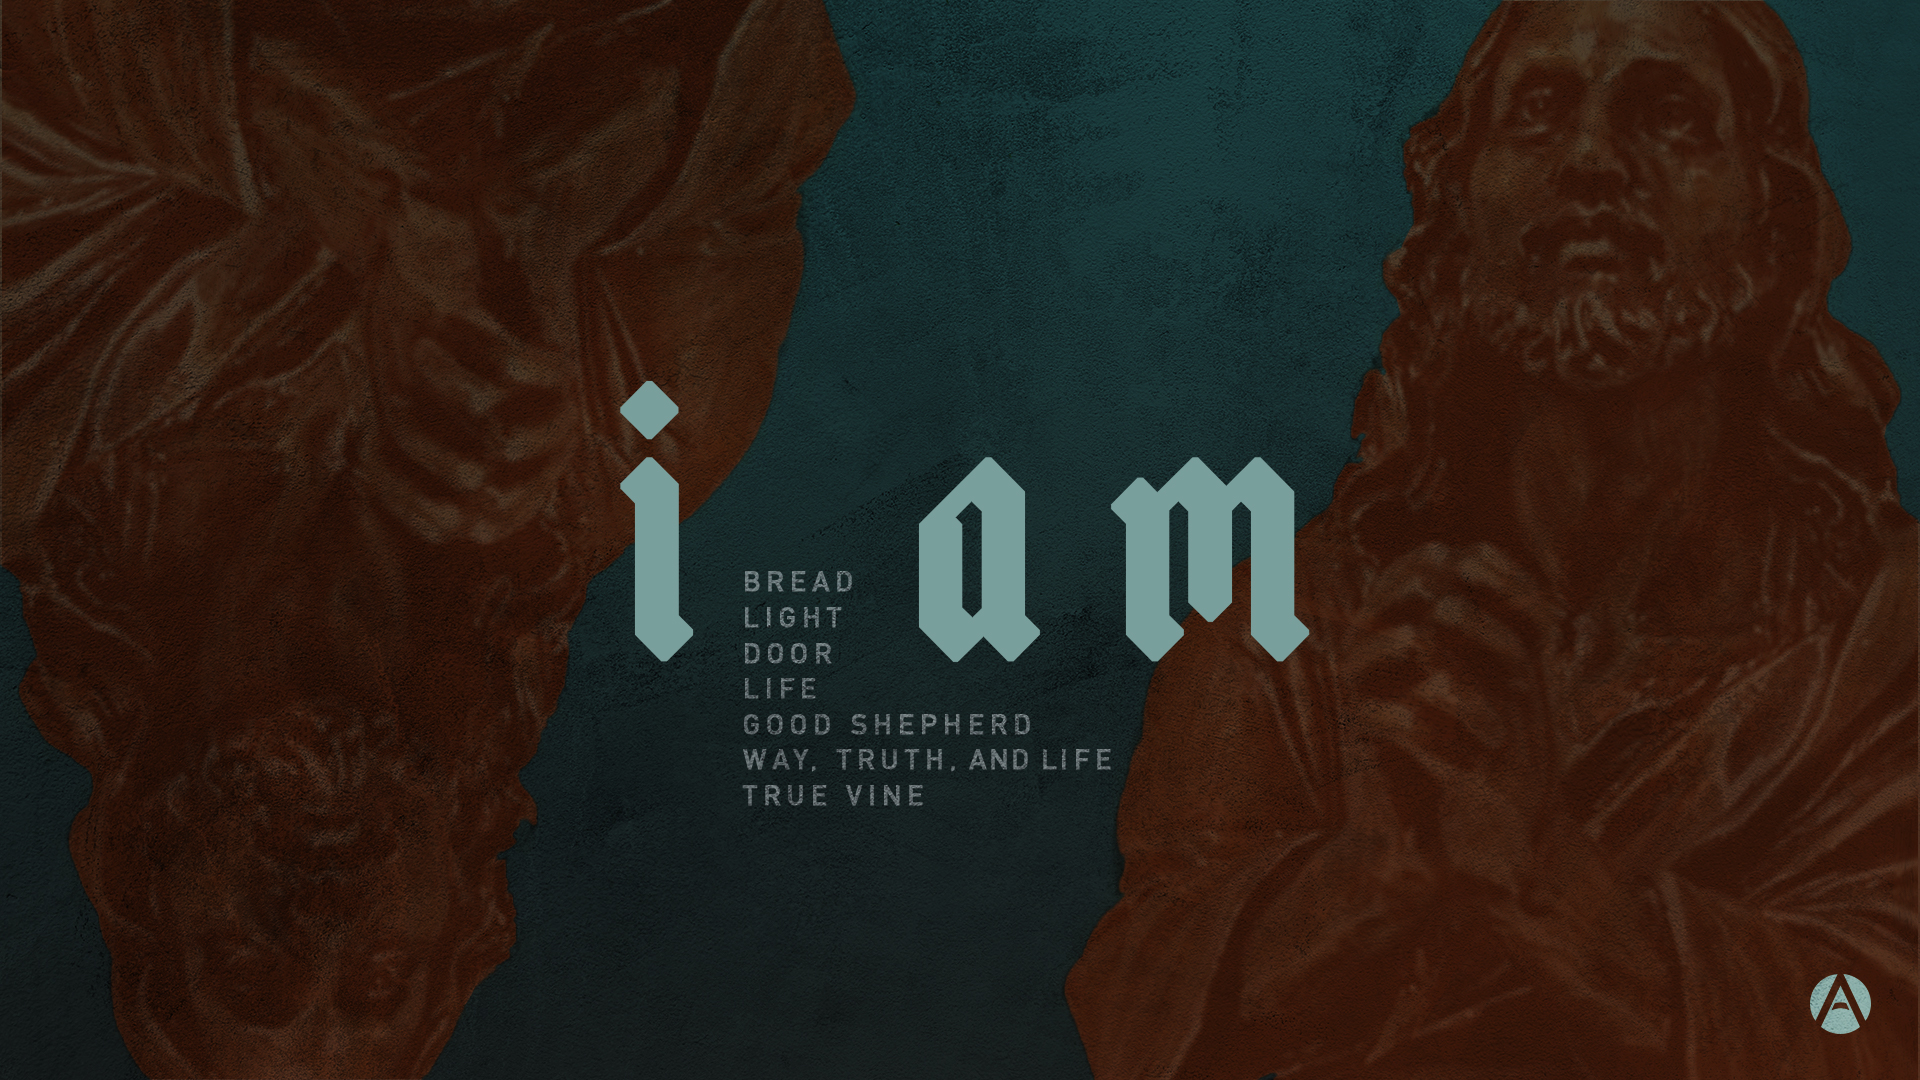 Current Series - A sermon series that focuses on who Jesus says He is.